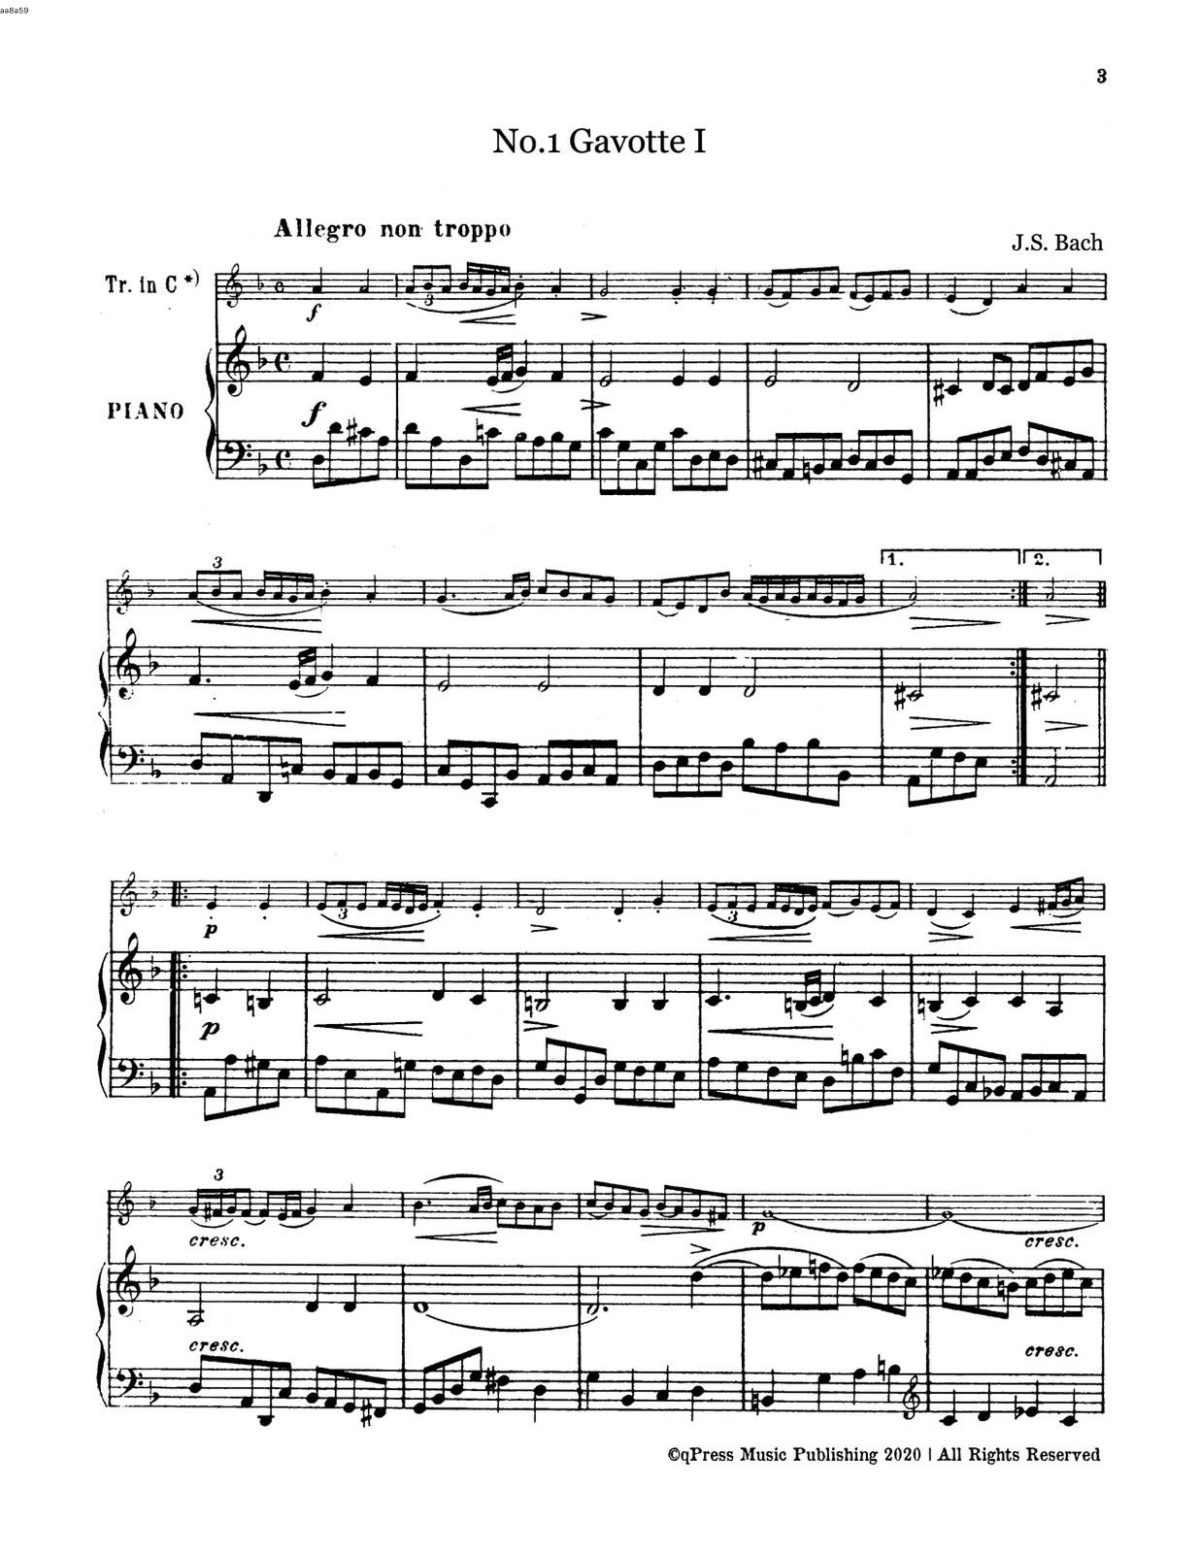 Bach-Goedicke, 12 Old Dances of Bach-p11